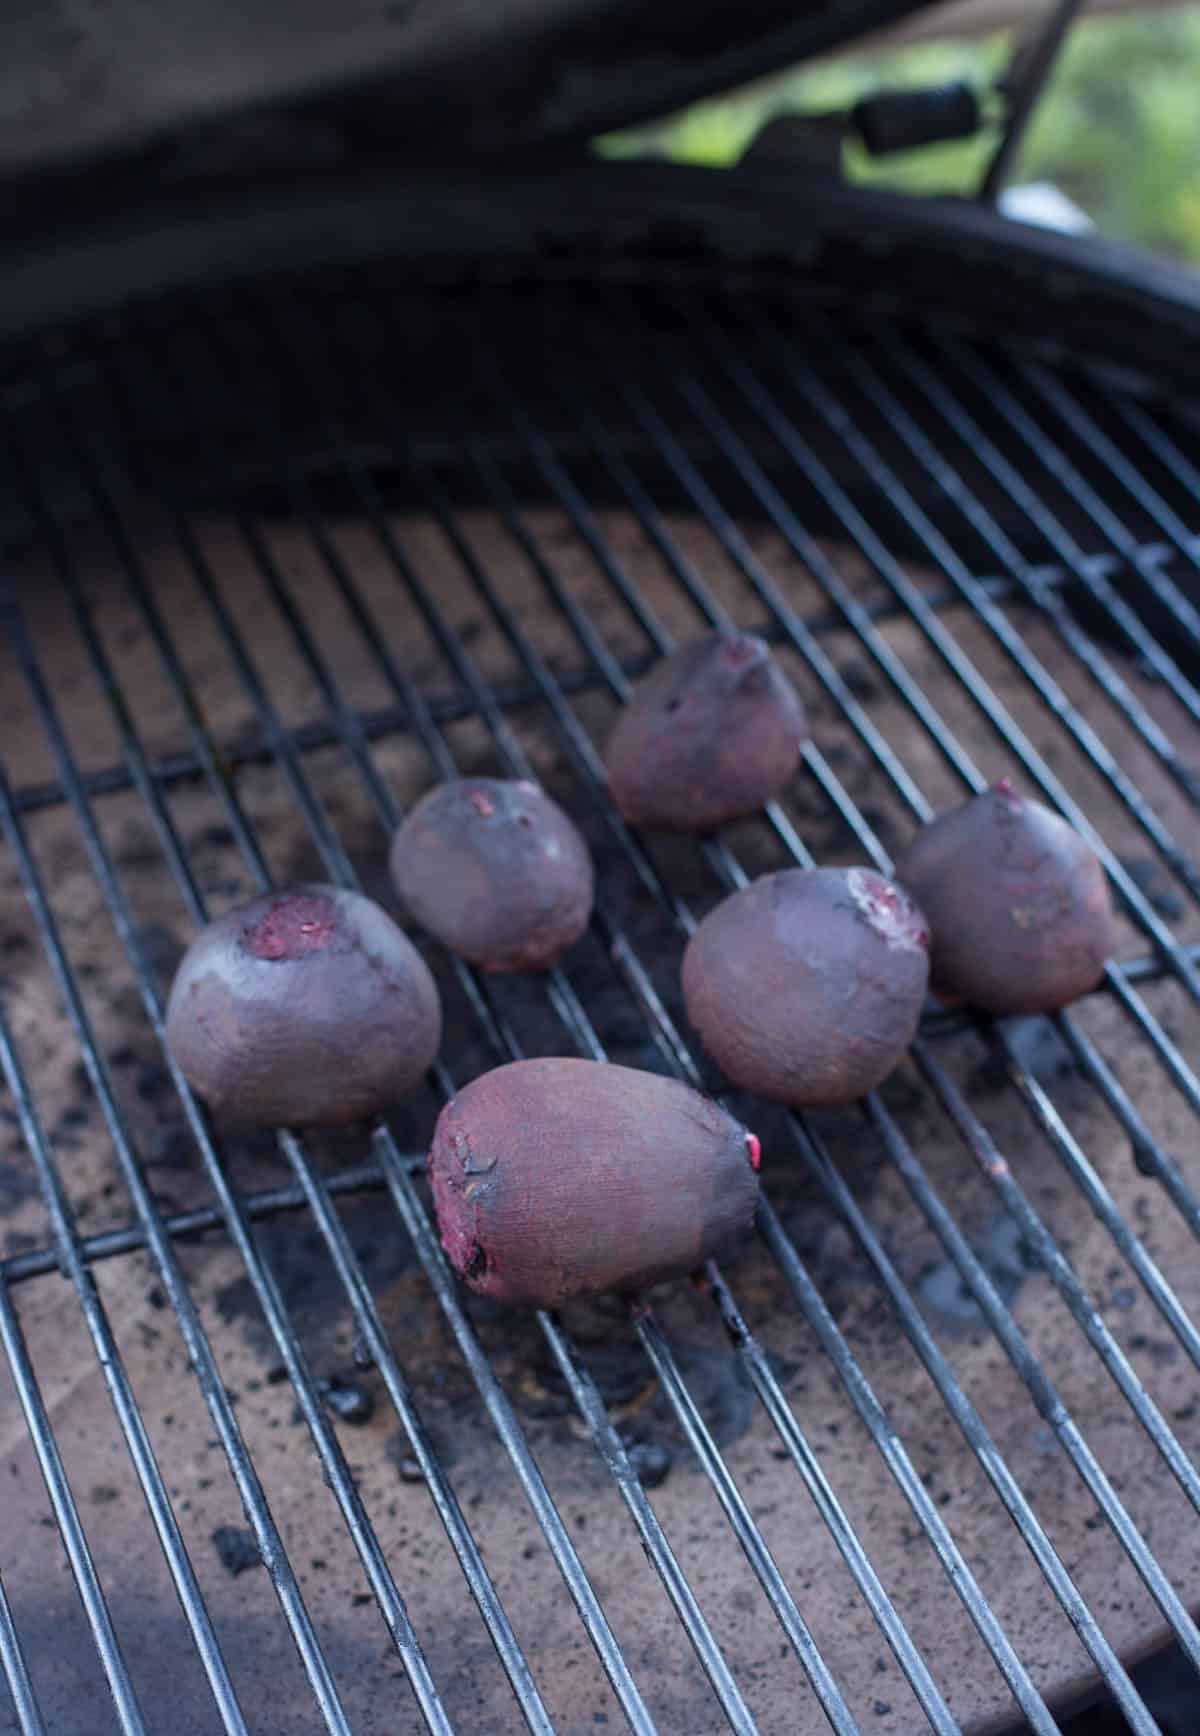 6 red beets smoking on a grill